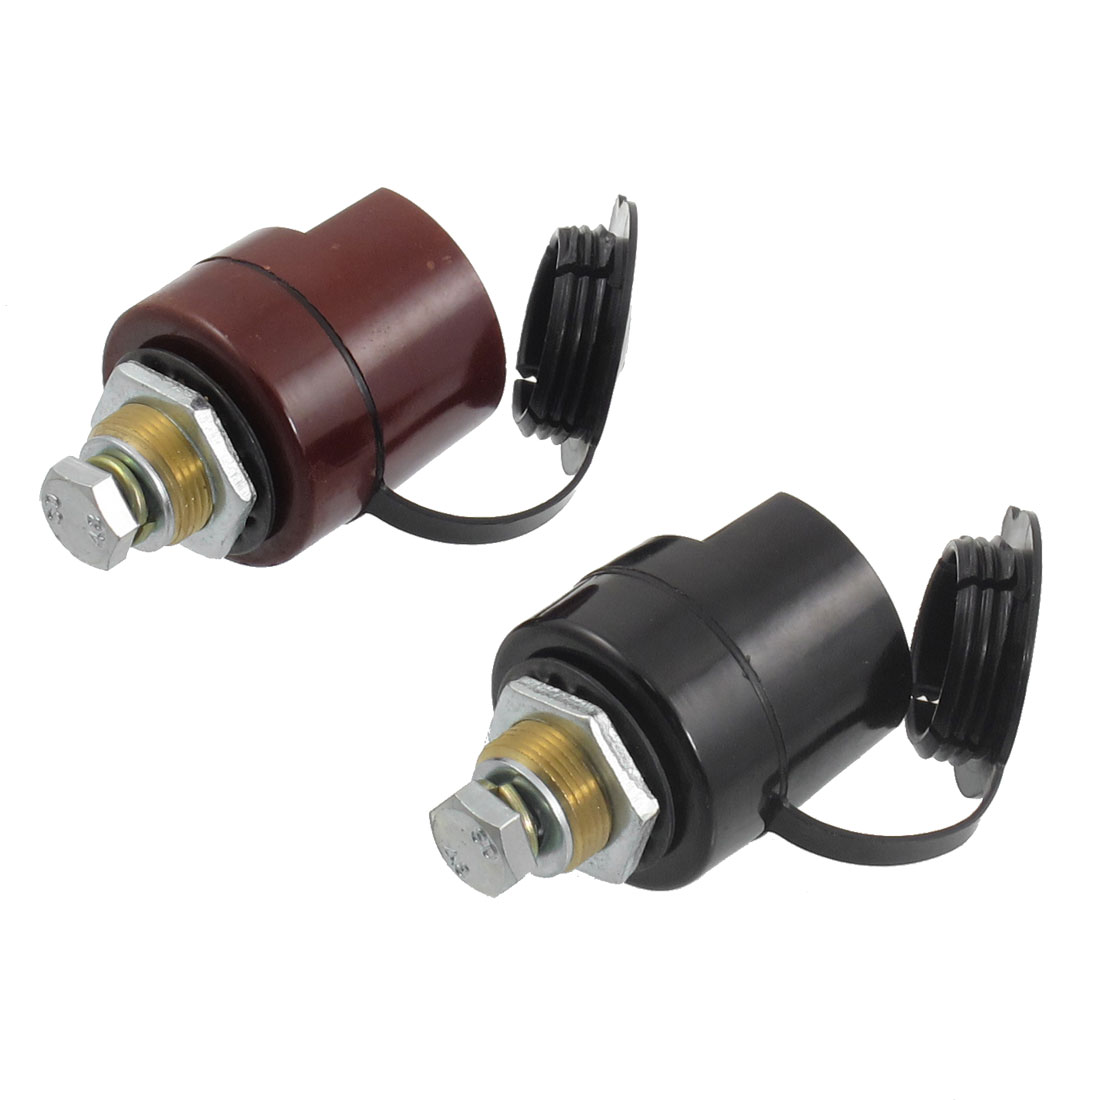 2 Pcs Covered Welding Cable Joint Quick Connectors 120mm2